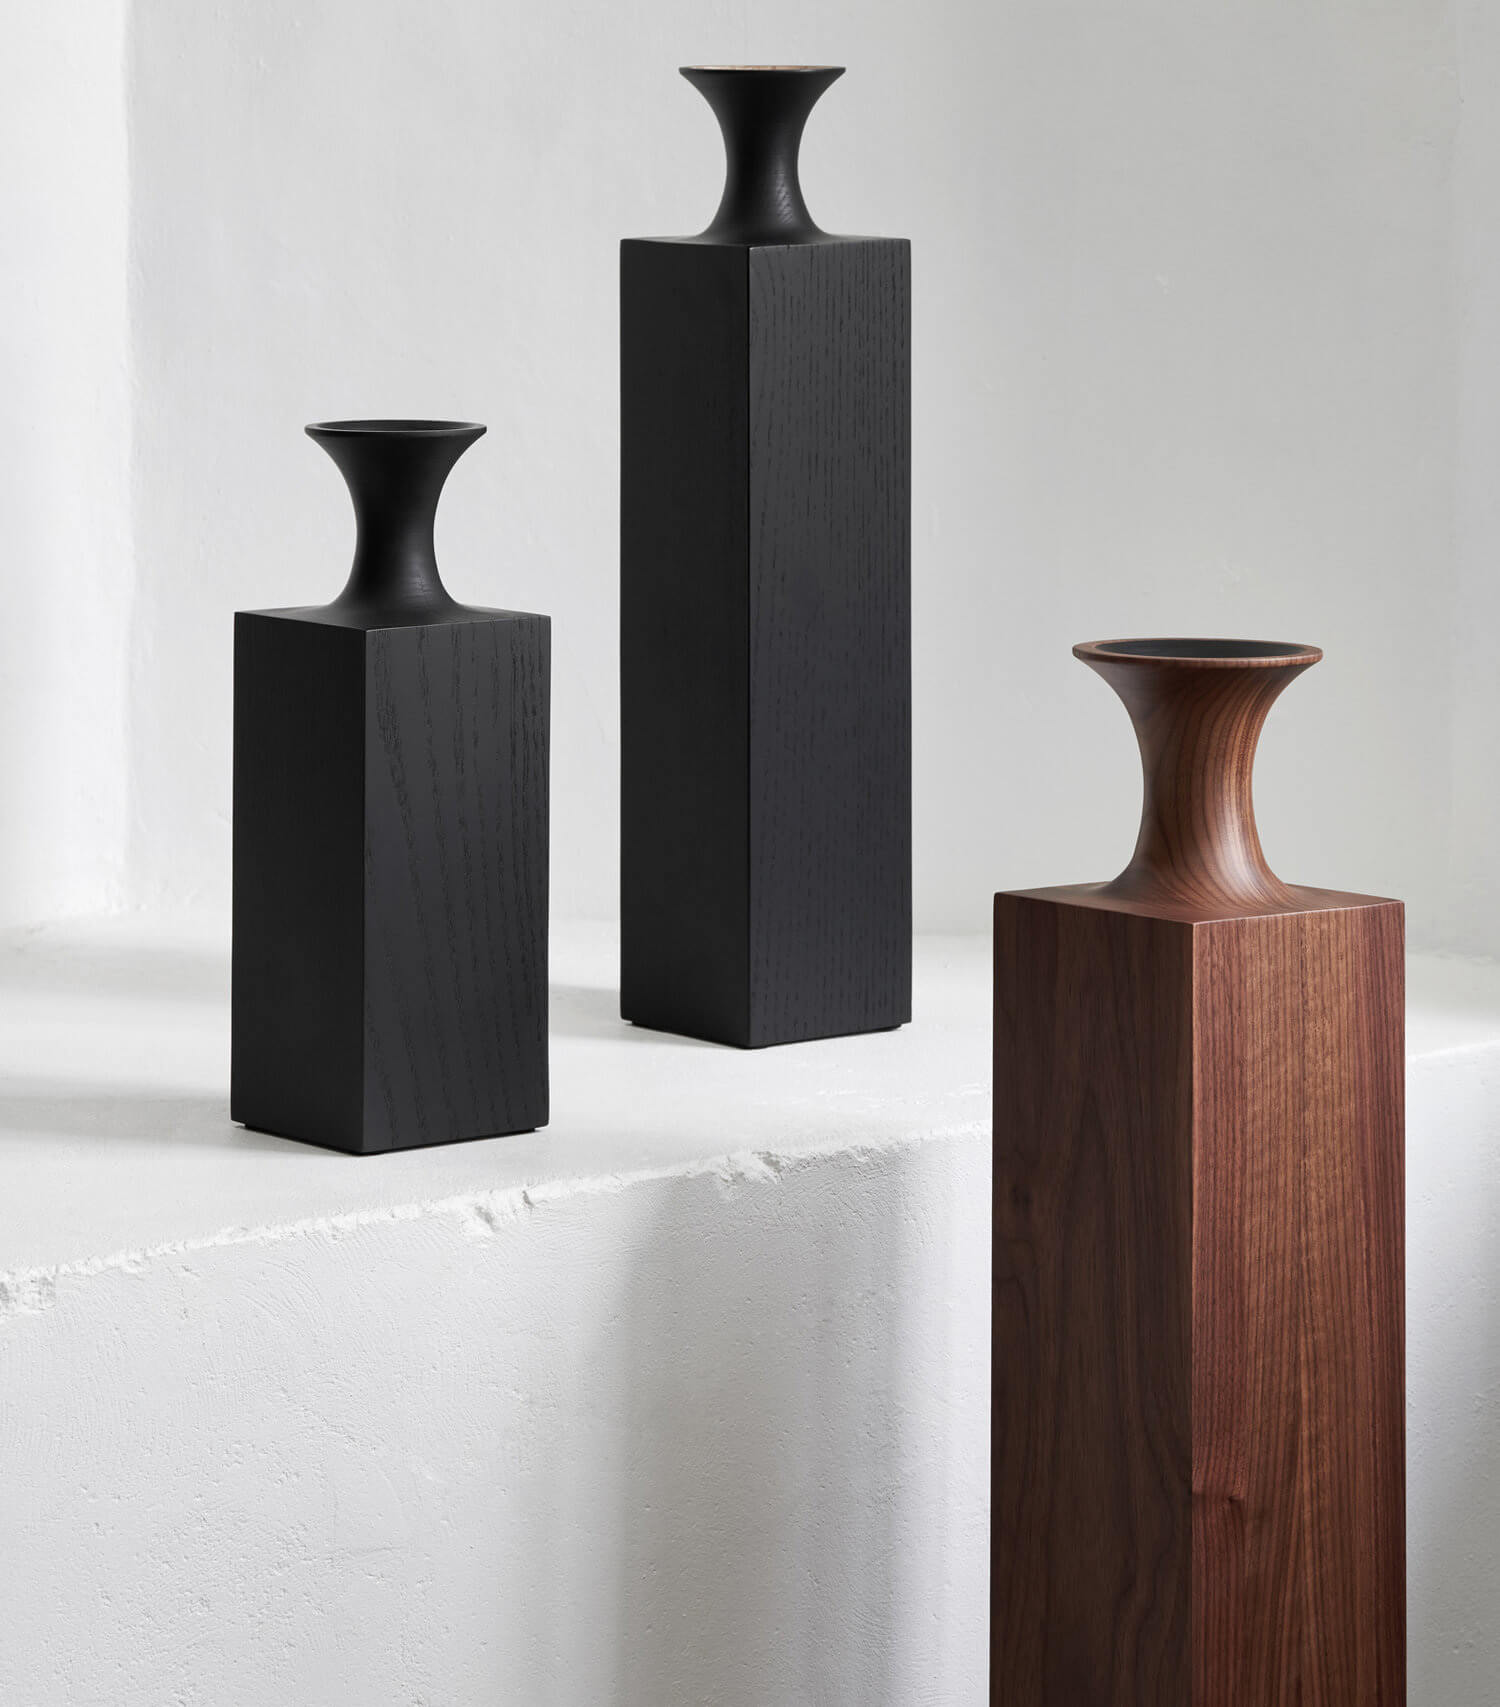 Tasso Vase collection by Mathieu Delacroix | Mathieu Delacroix |10 wood sculptors you should know | STIRworld